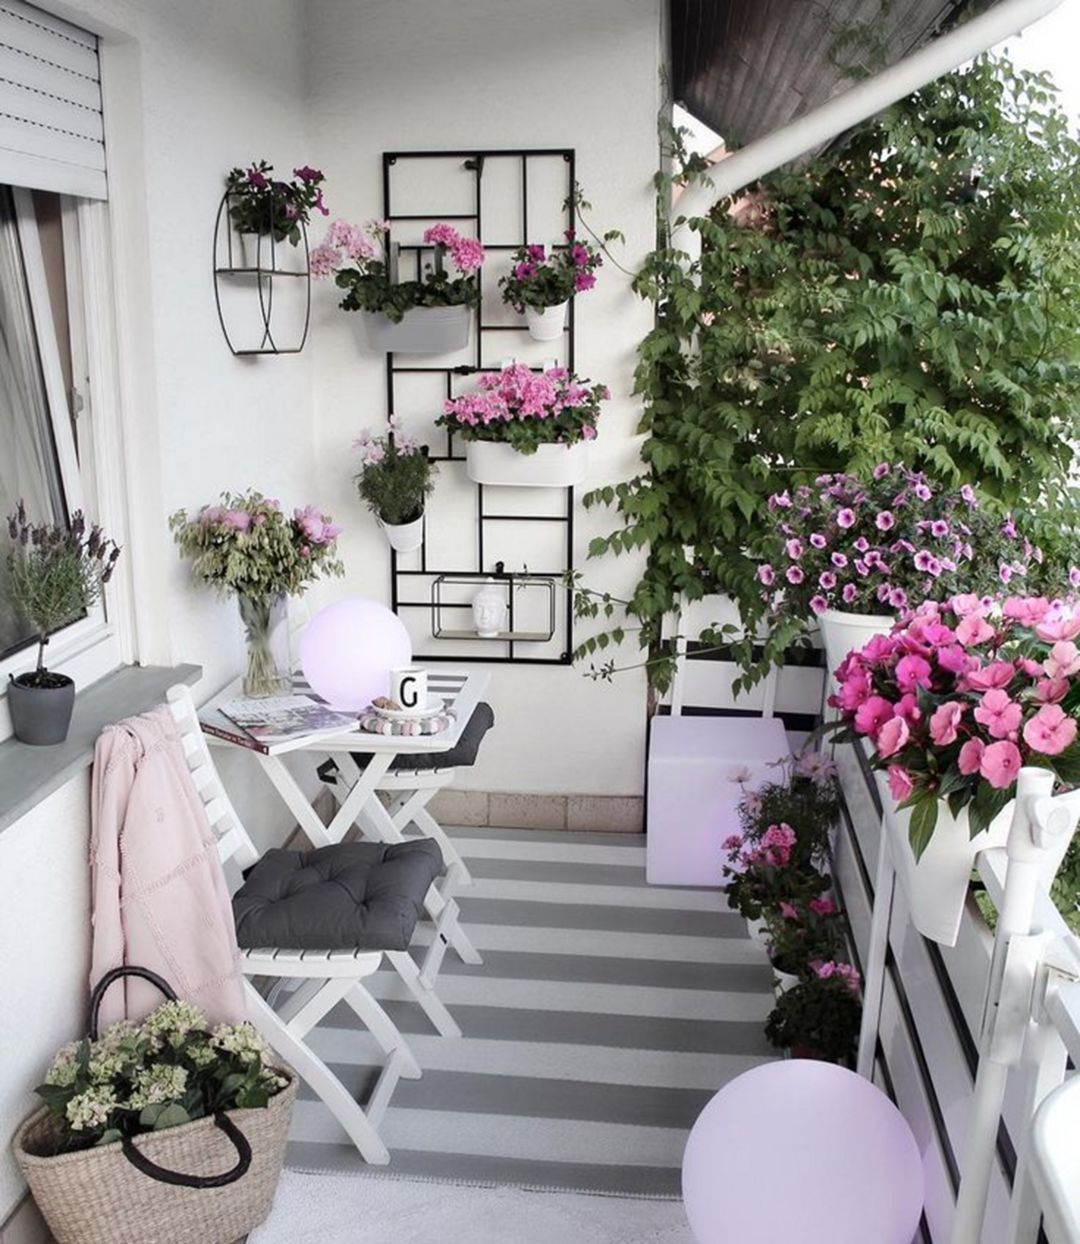 23 Simple Balcony Design Ideas for Beautifying Apartments  Small